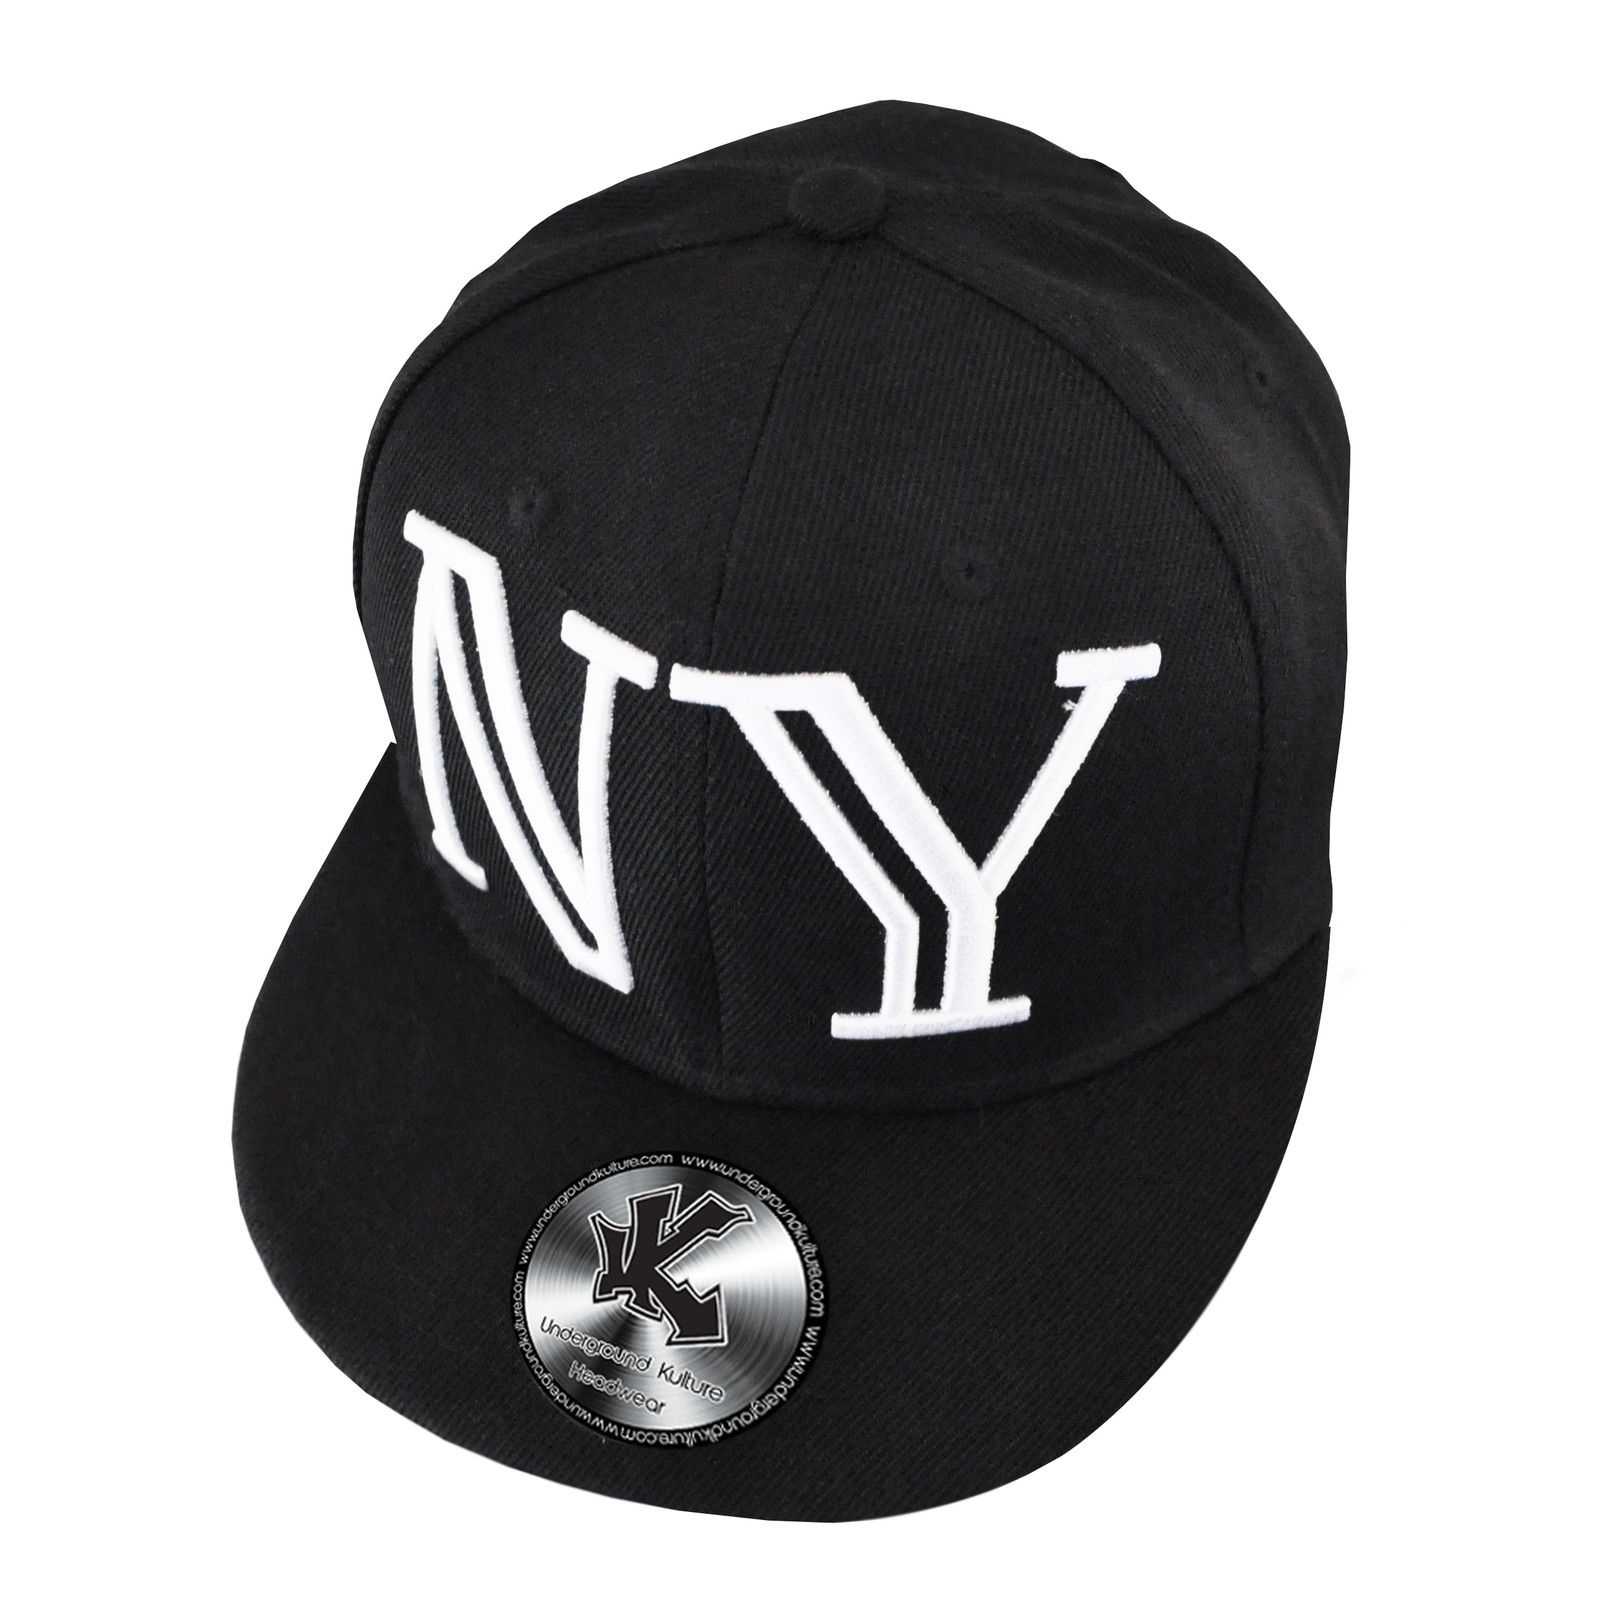 19b08cb2136 Details about New Underground Kulture - NY Type Flat Peak Snapback Baseball  Cap - Adjustable